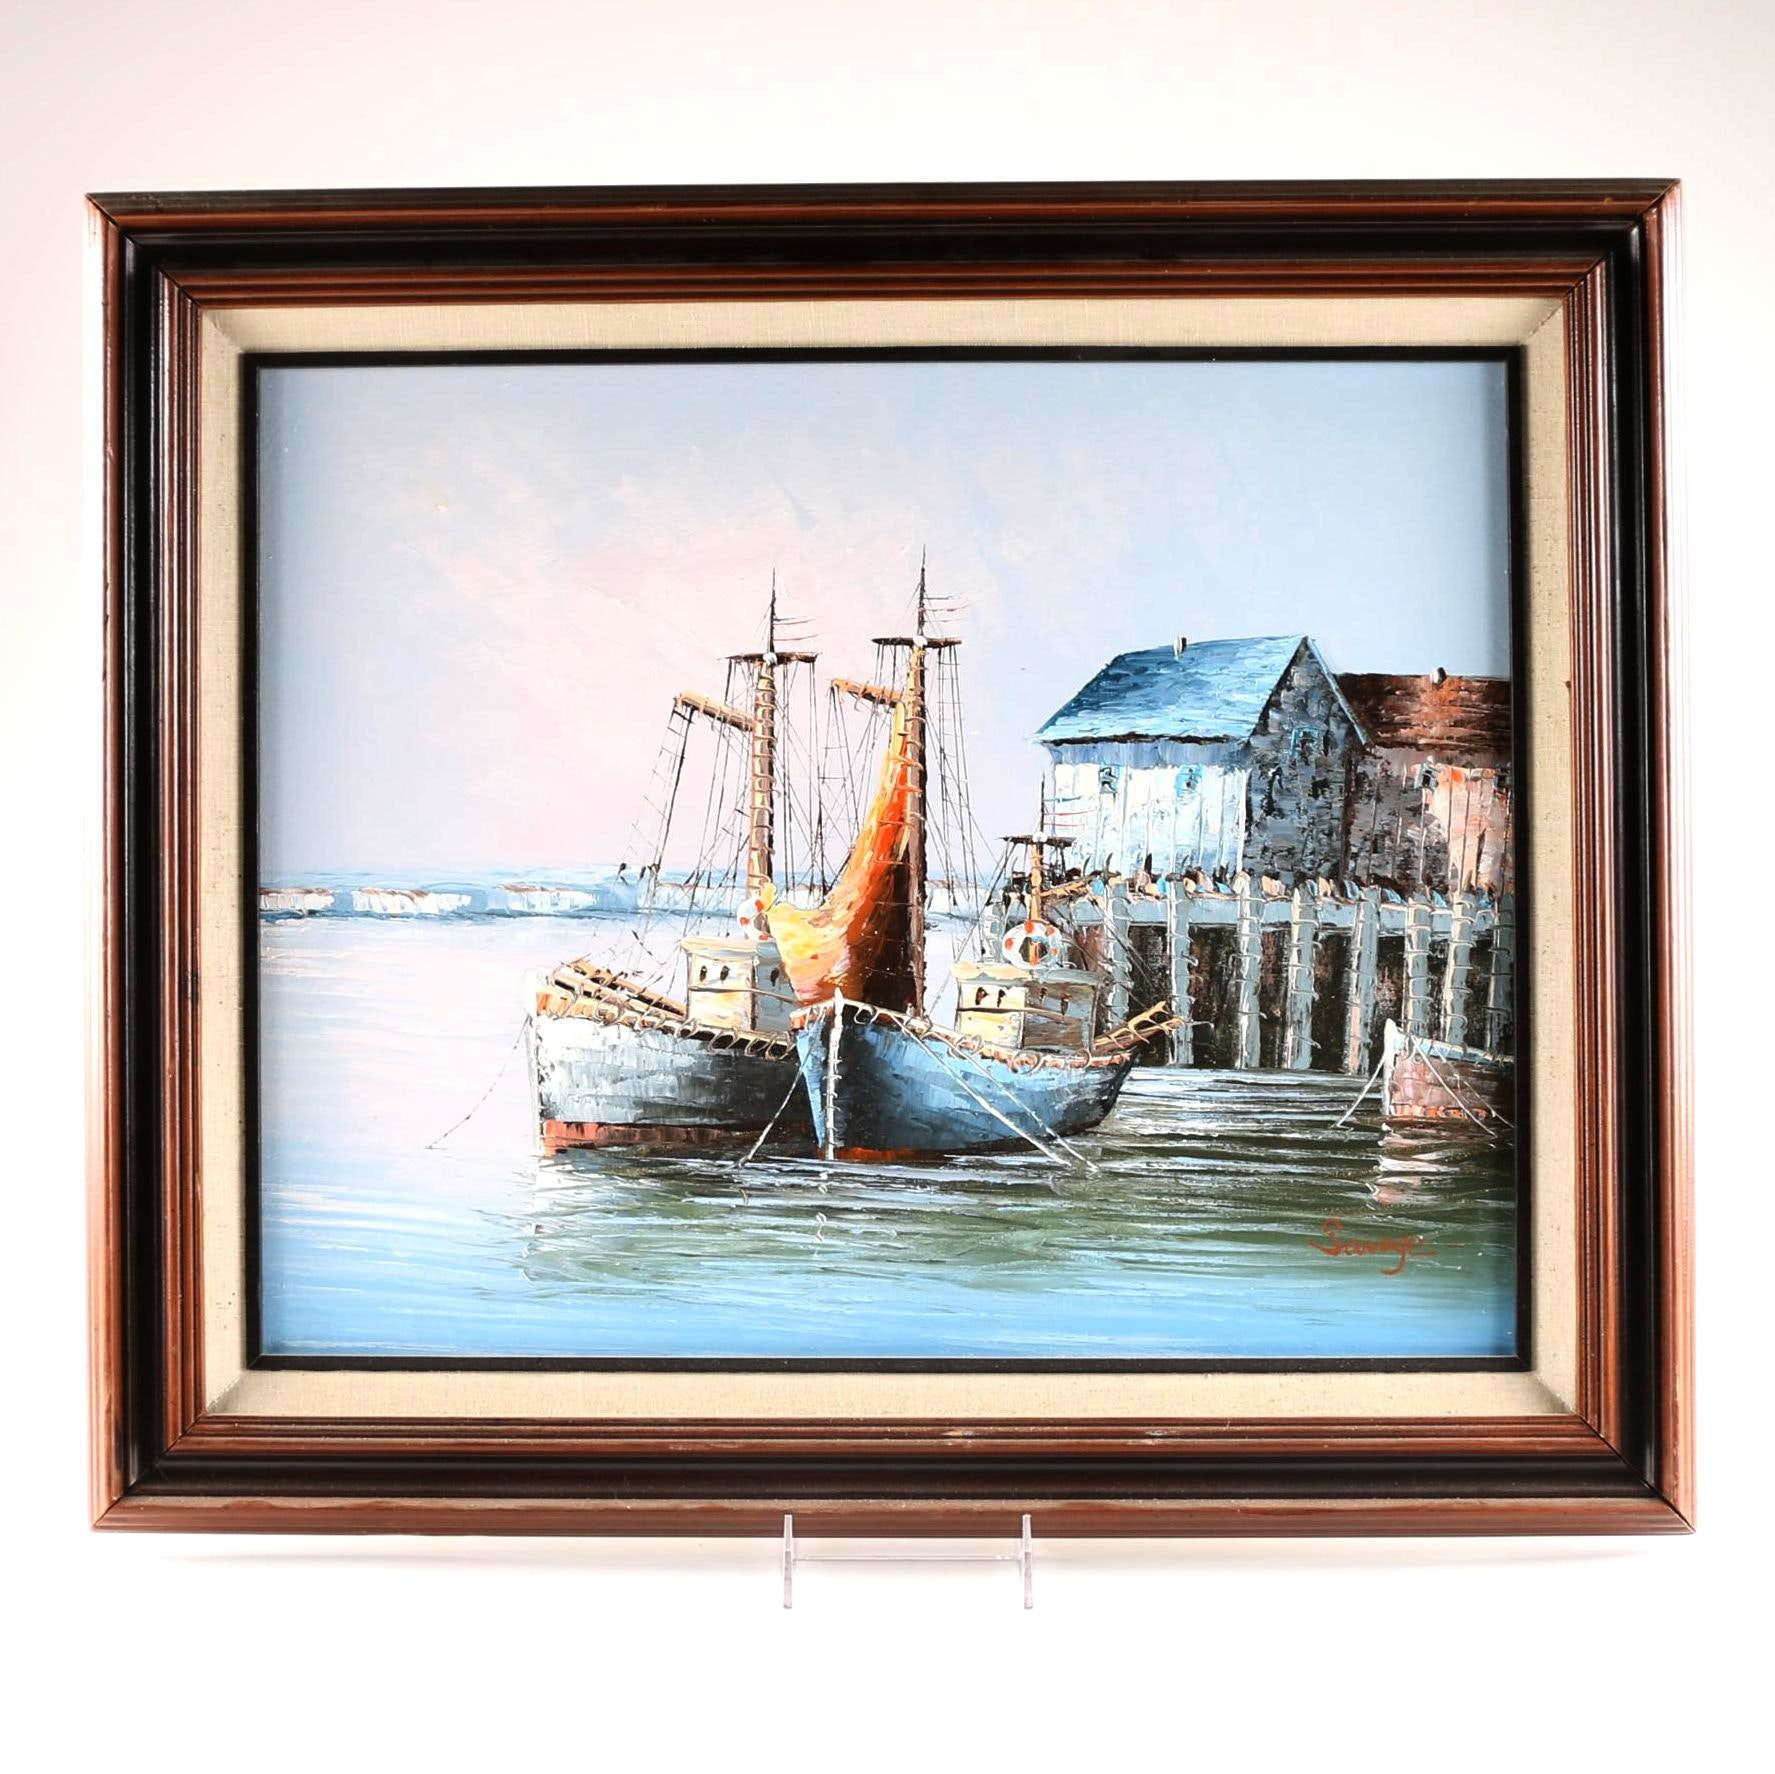 Savage Signed Original Oil Painting of Docked Boats